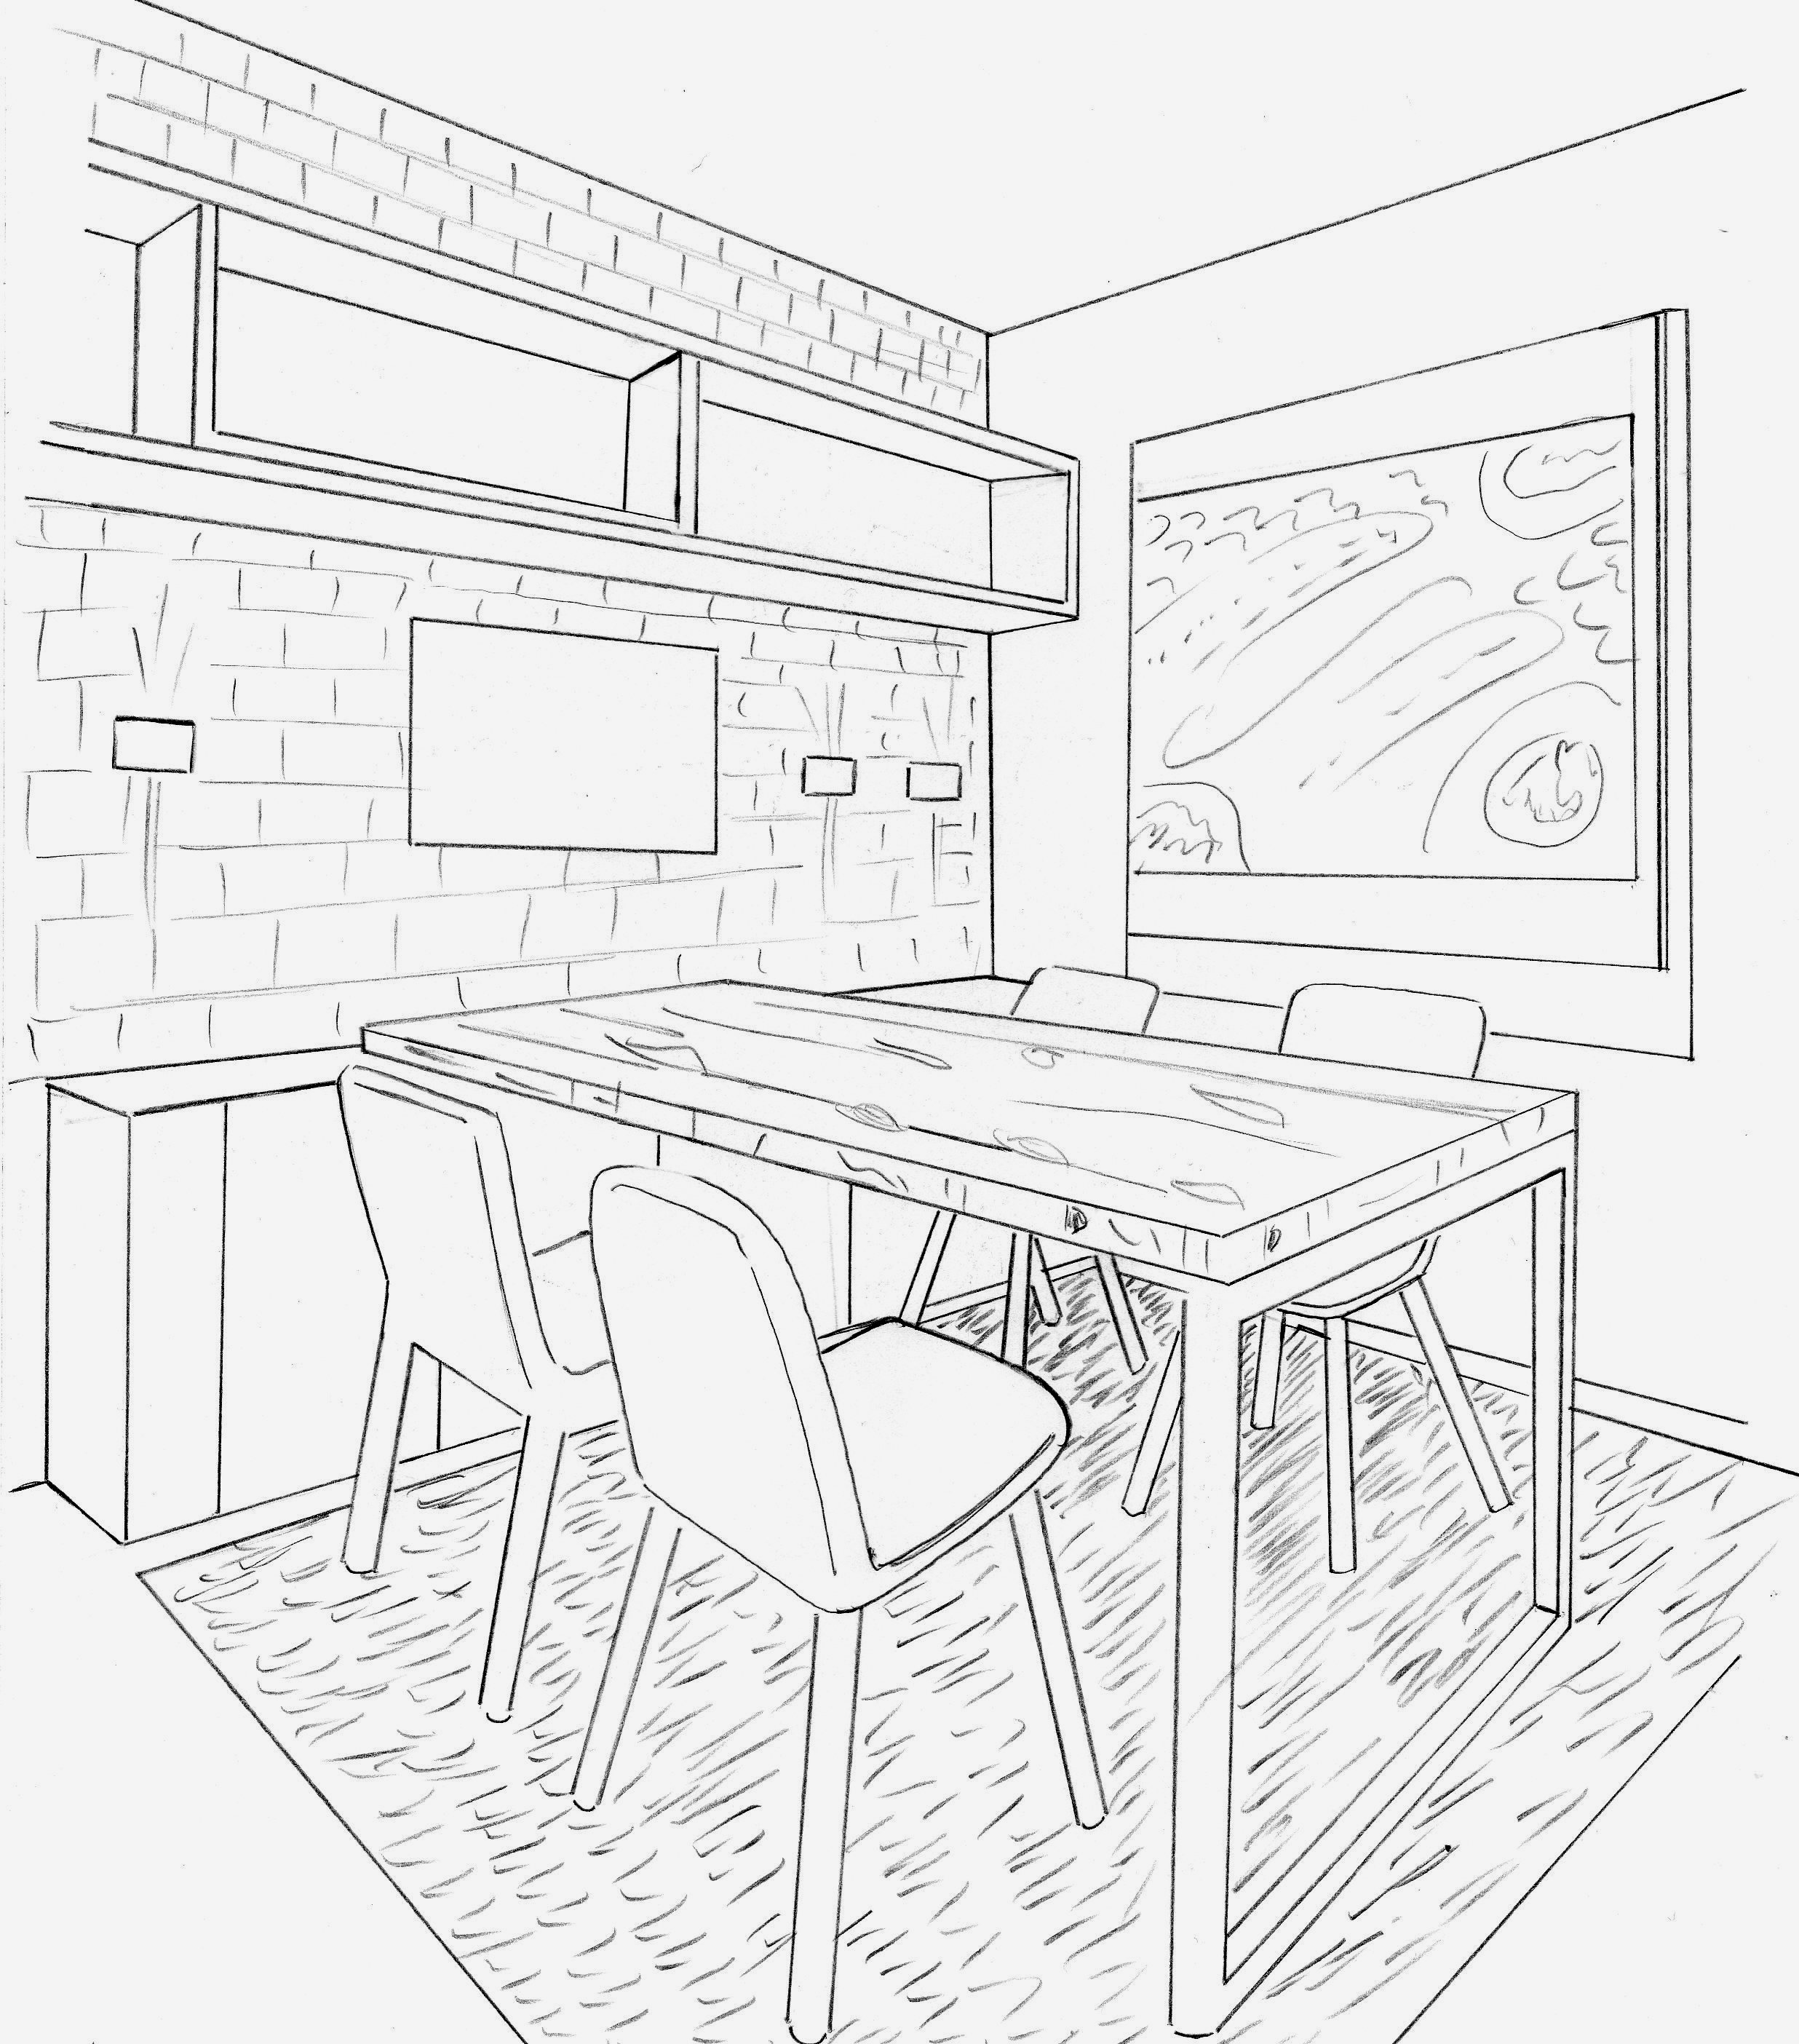 2472x2808 2pt. Perspective Point Perspective Drawing Ideas Point